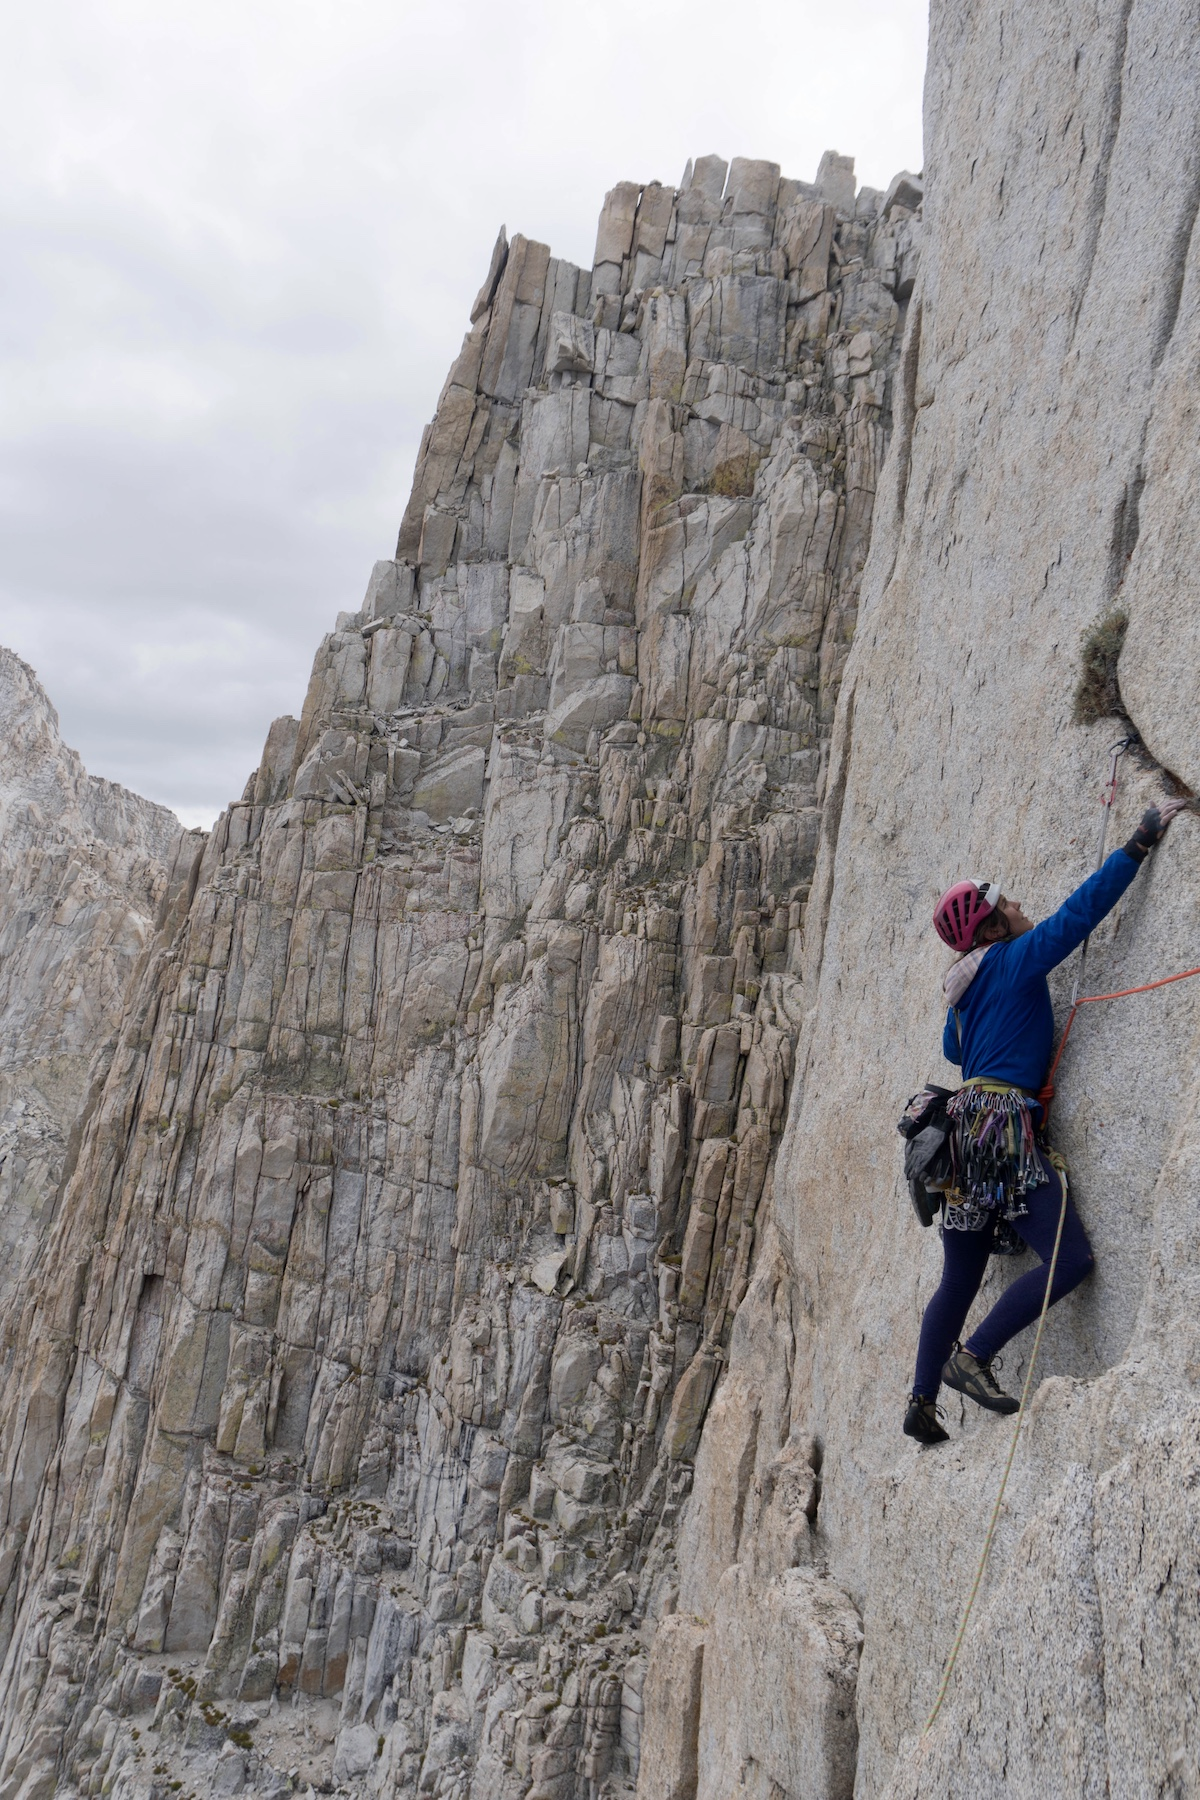 Whitney Clark wears the Patagonia Nano-Air Light Hoody while leading a pitch on the first ascent of High Fashion (5.10, 1,000') on a peak near Wales Lake in the Sierra Nevada Range. The team found a tiny pill container that contained a summit register and identified the mountain as Wales Lake Peak. The register only had two ascents from teams who walked up the backside, Clark said. [Photo] Tad McCrea